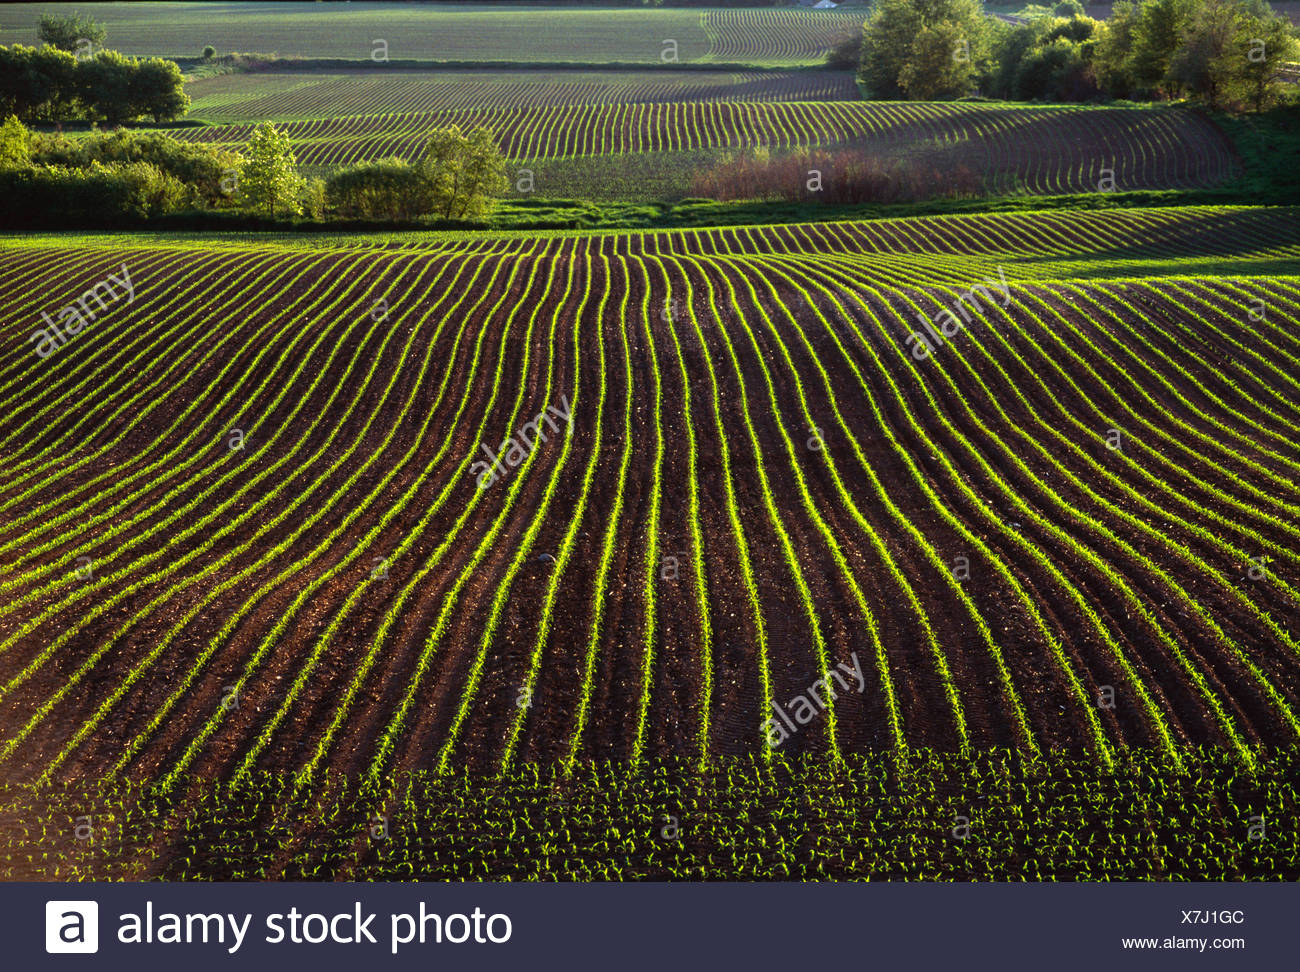 Agriculture - Rolling fields of early growth grain corn in early morning light / near La Fox, Illinois, USA. Stock Photo